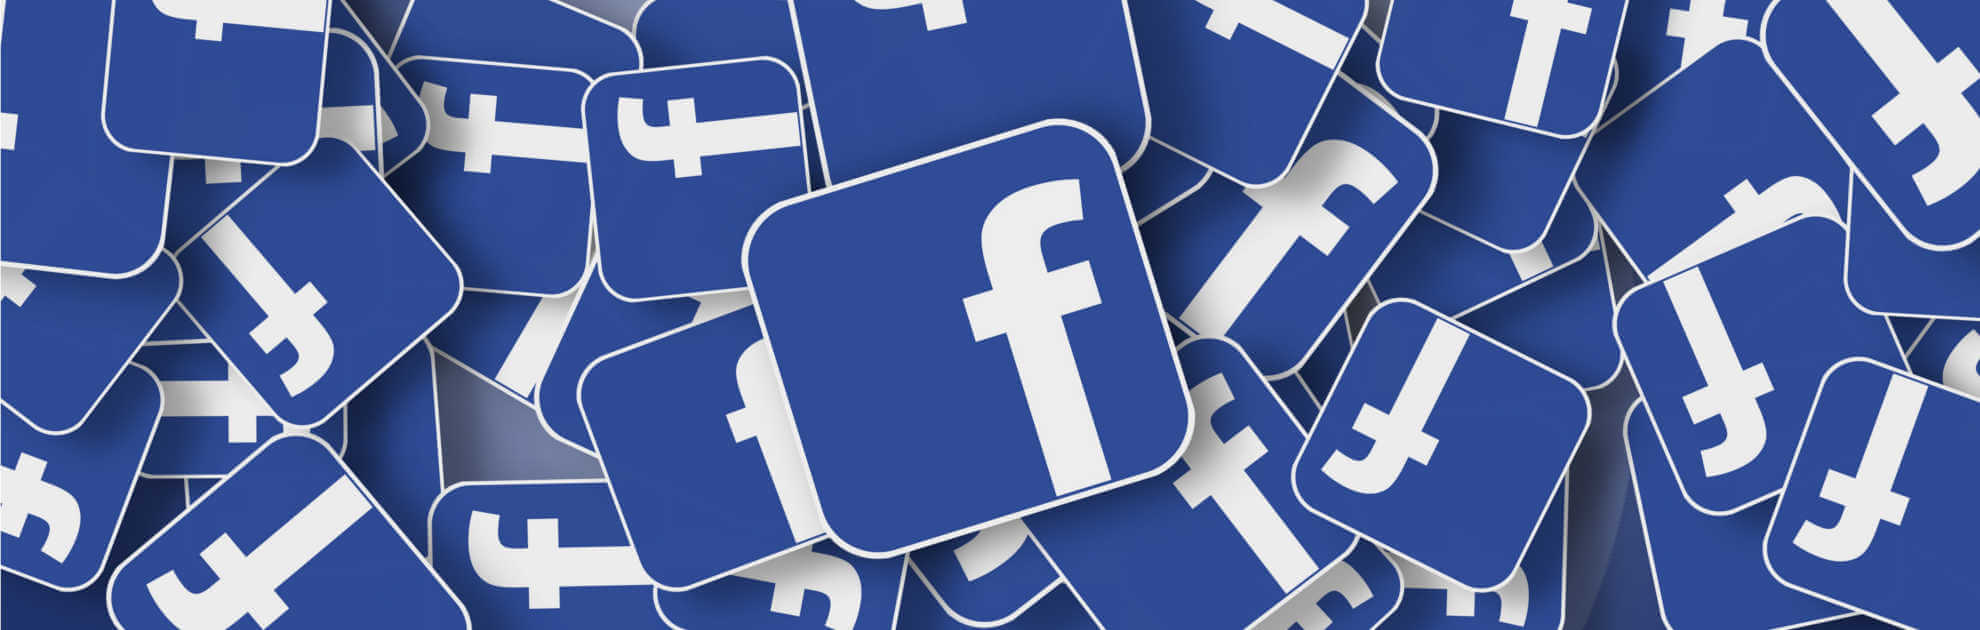 How to Protect Facebook Account from Being Hacked